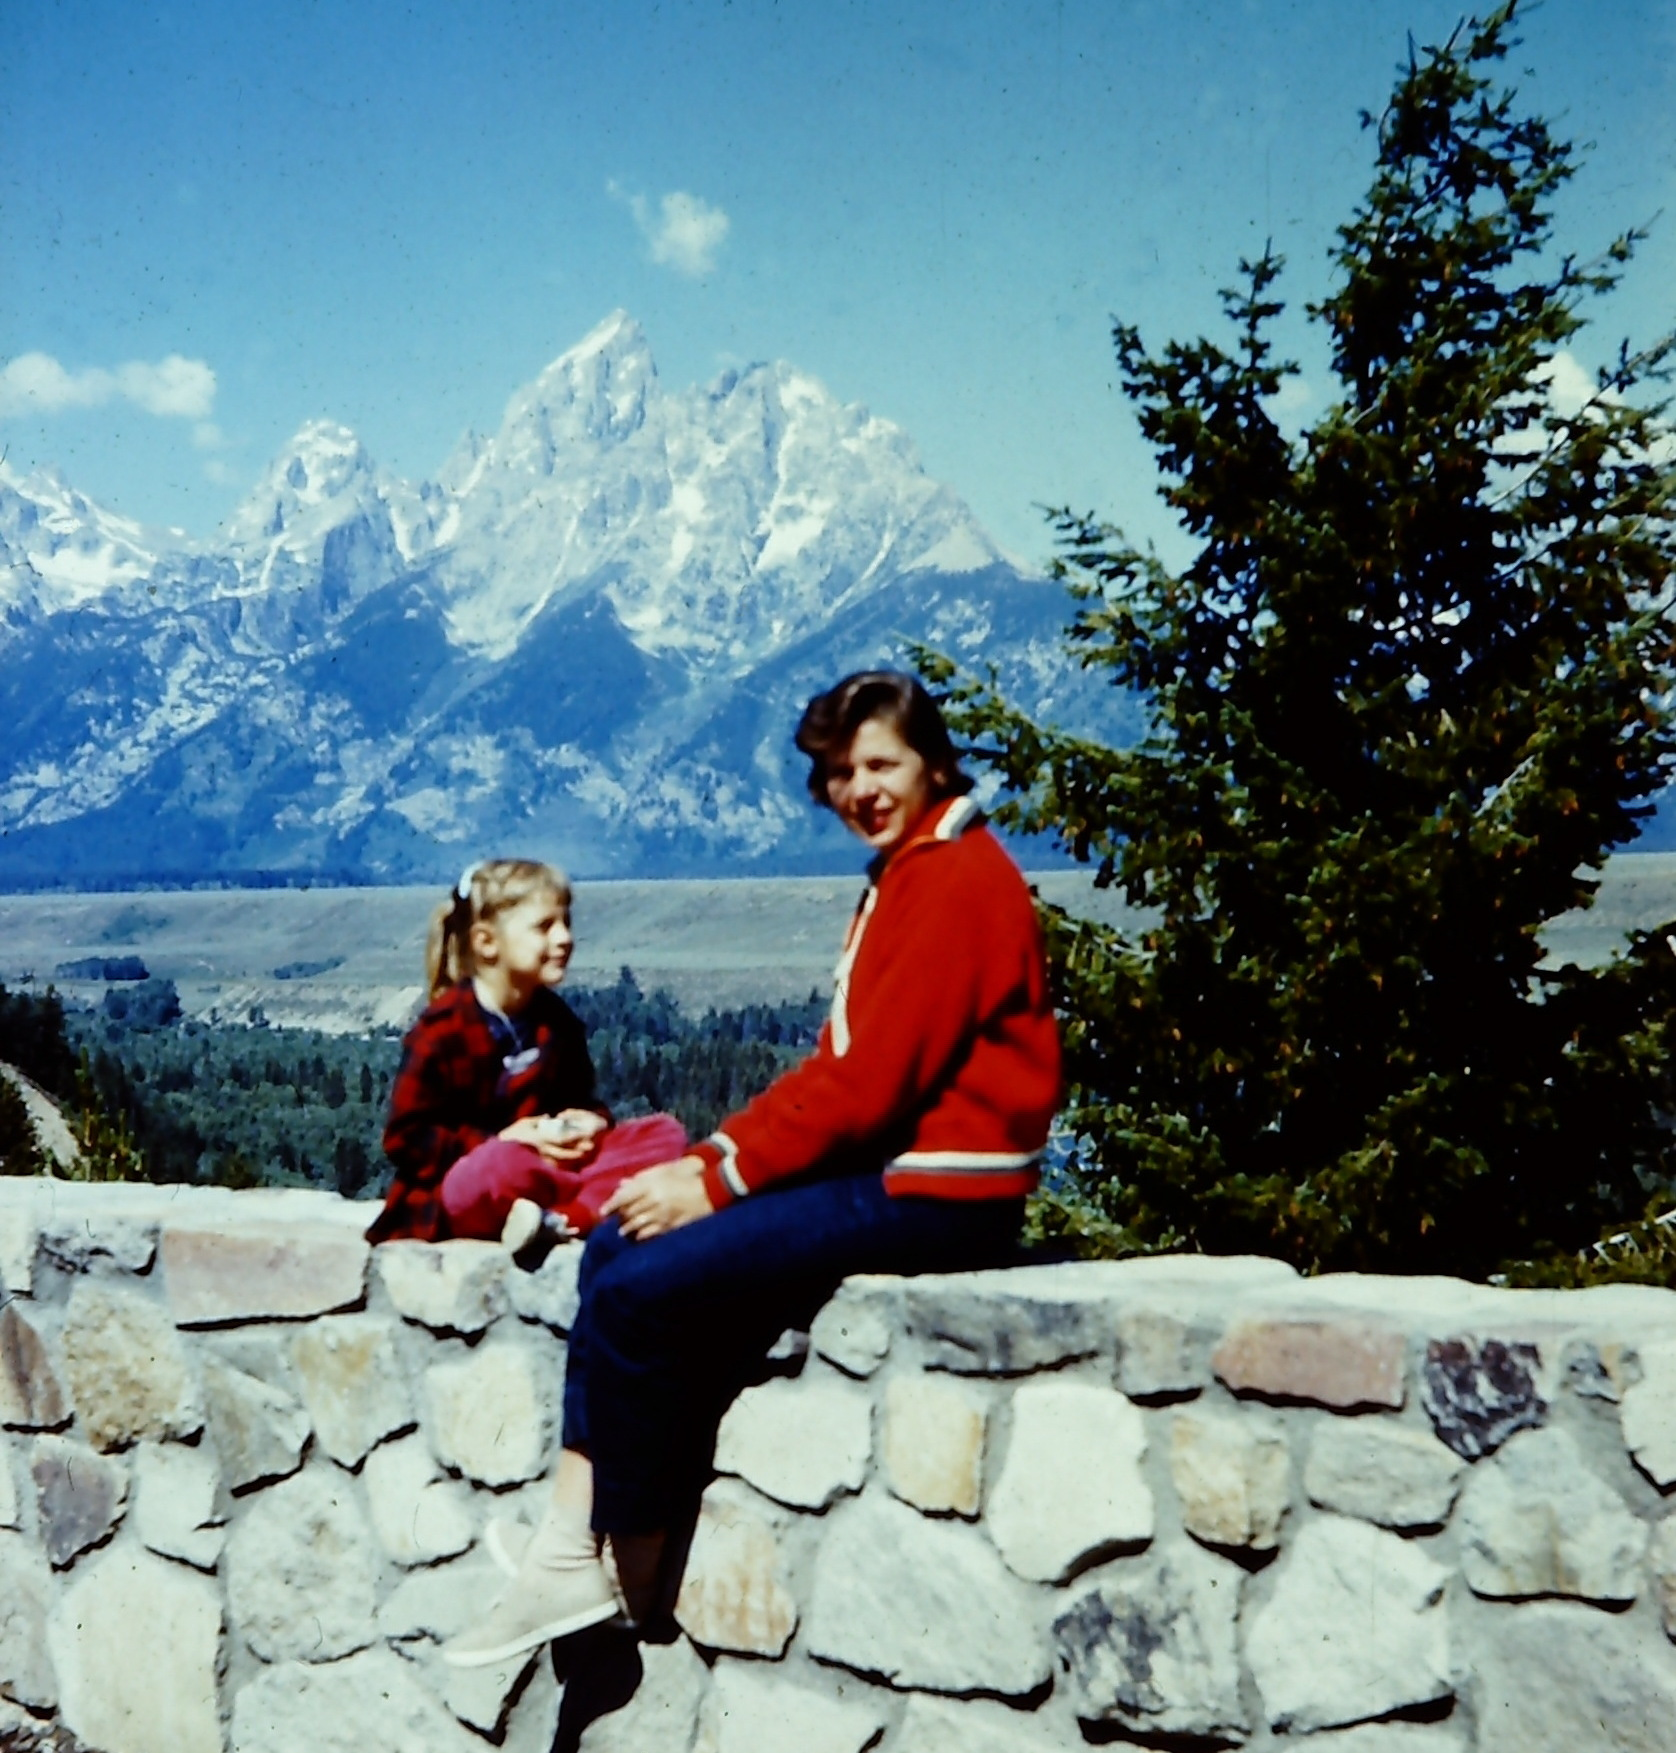 Grand Teton National Park - 1957 - Mom and I